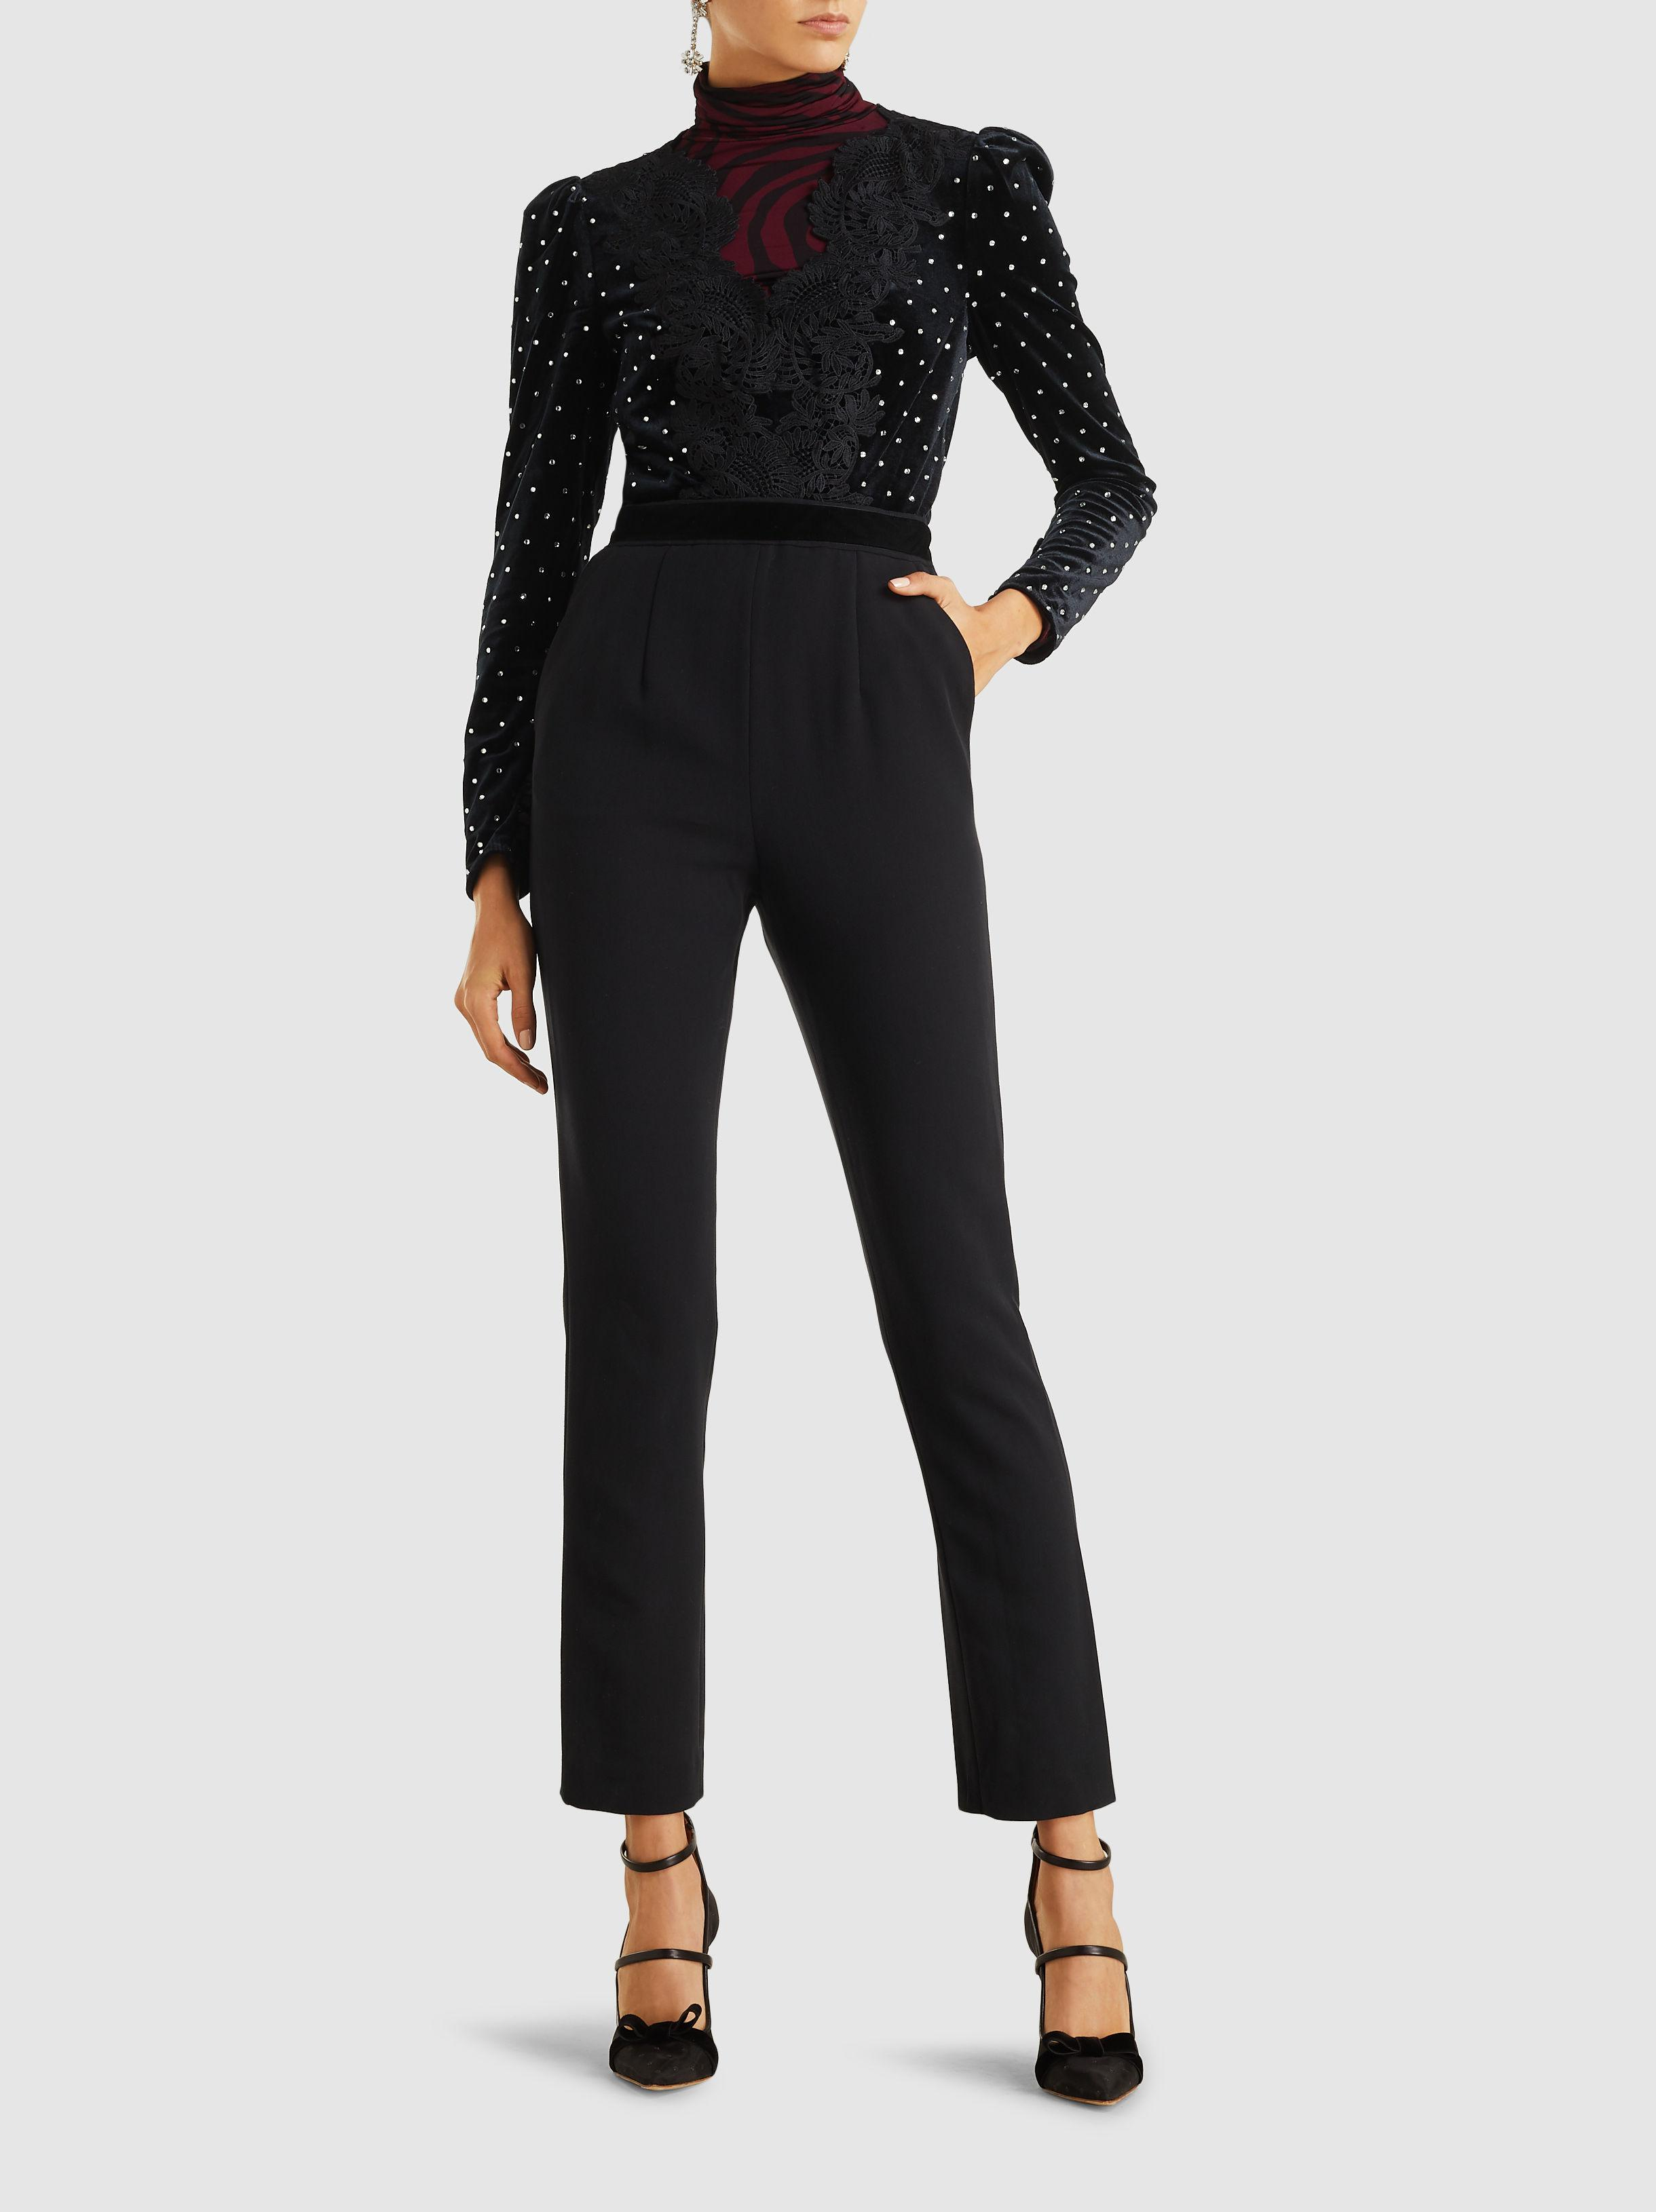 a3b4fd2aec2a Self-Portrait - Black Jumpsuit With Crystals And Lace - Lyst. View  fullscreen